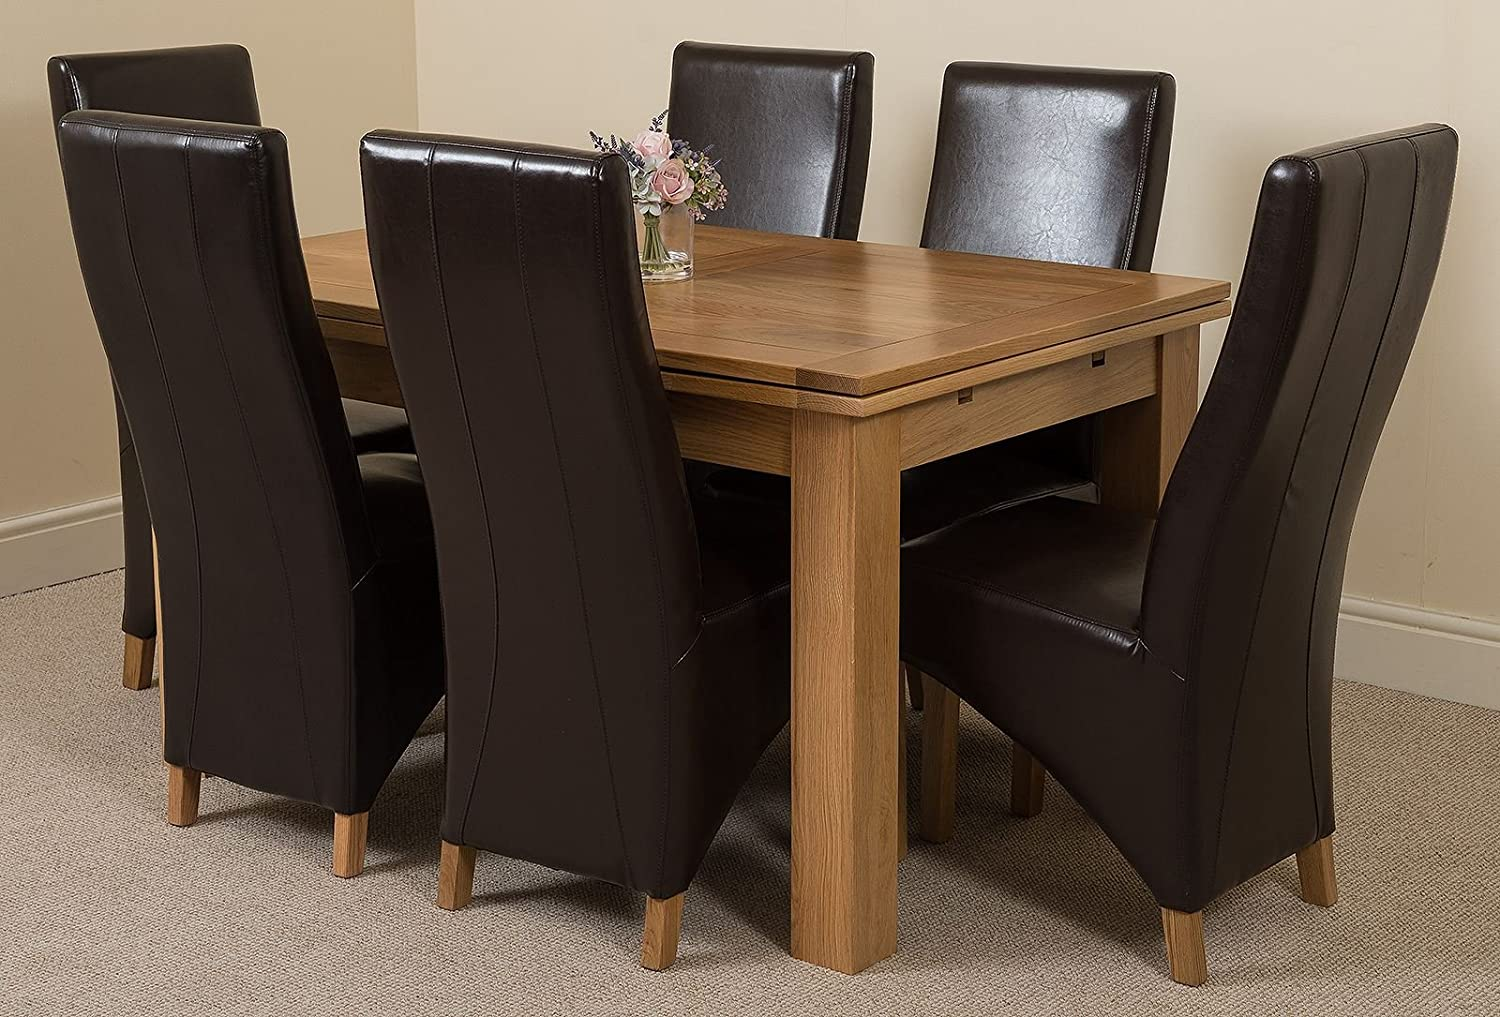 Modern furniture direct richmond medium extending solid oak dining table and 6 brown leather chairs 100 solid oak 140cm 220cm extending fast